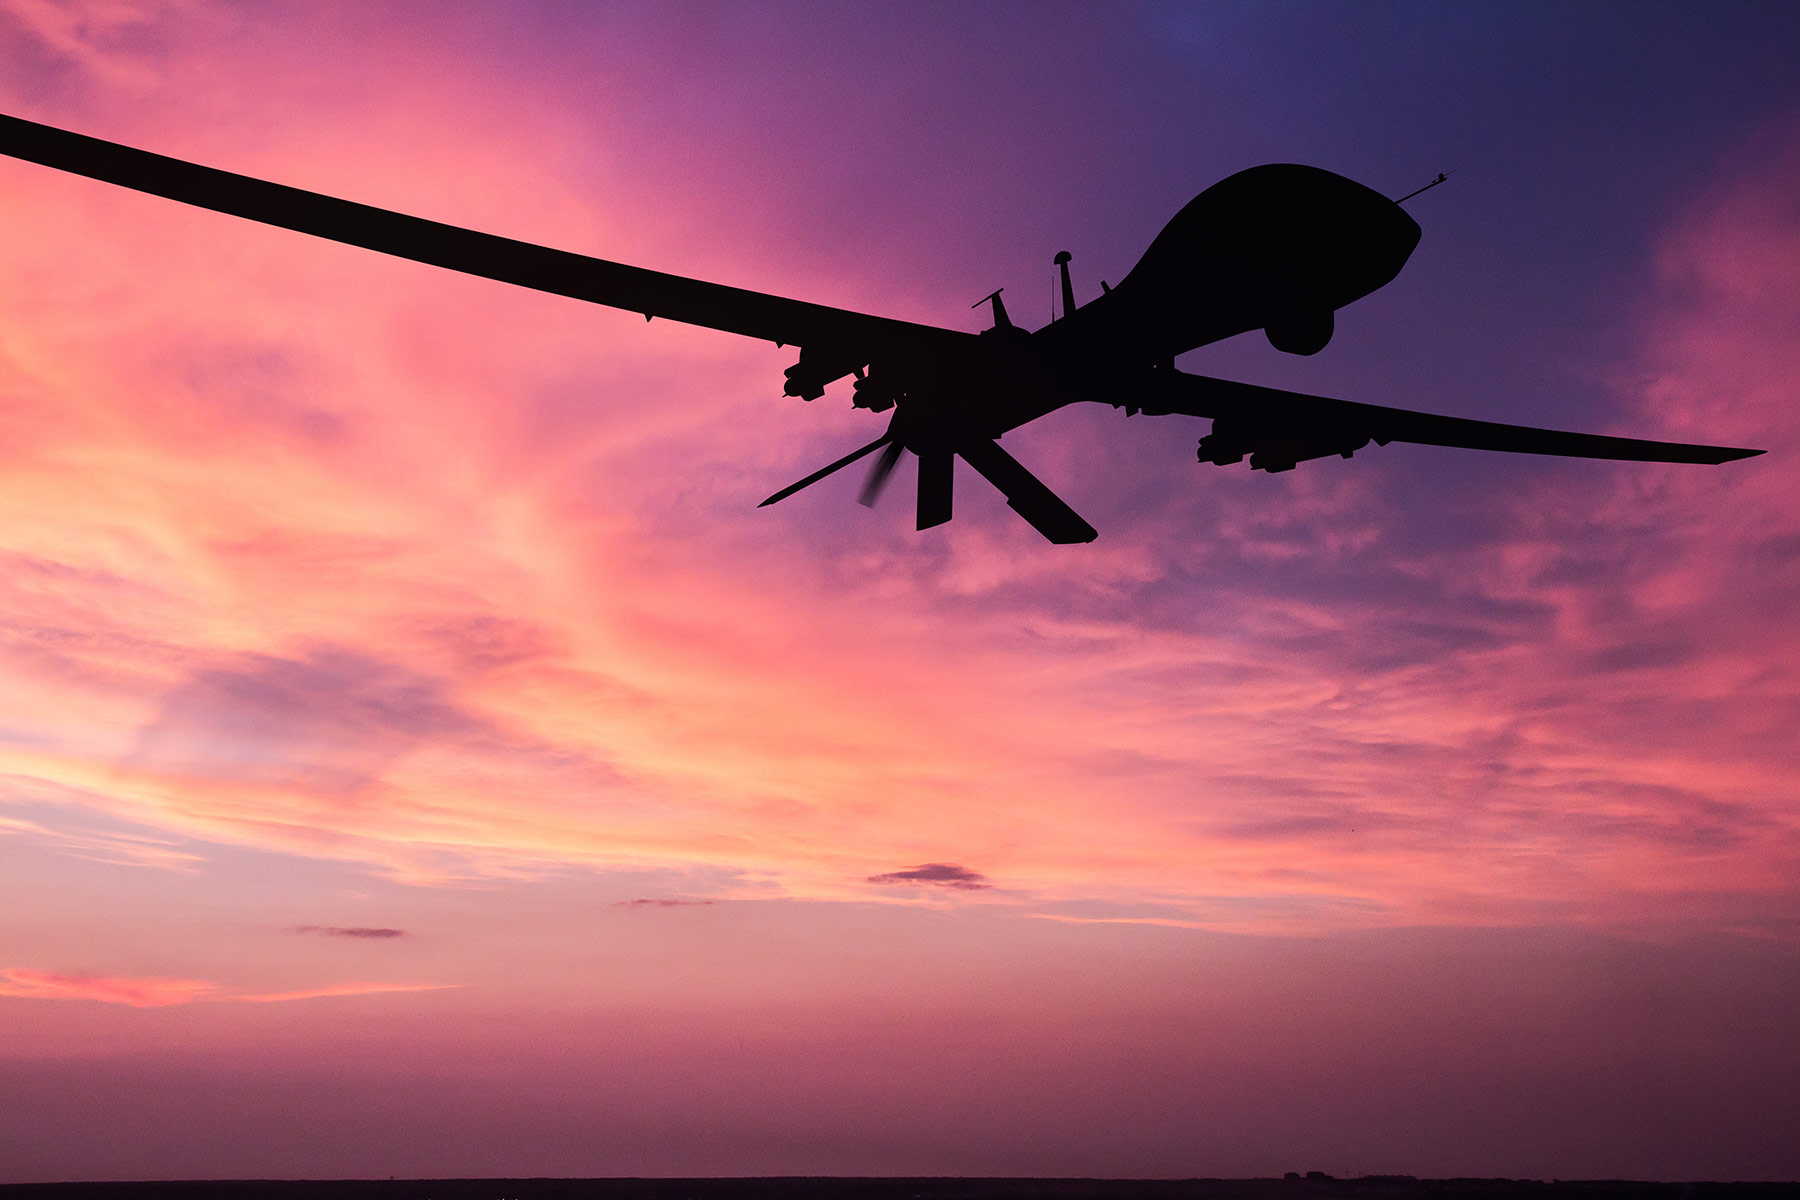 US Military, US drone strikes, American news, America, Afghanistan, US airstrikes, ISIS-KP, Islamic State in Khorasan Province, Afghanistan news, Peter Isackson